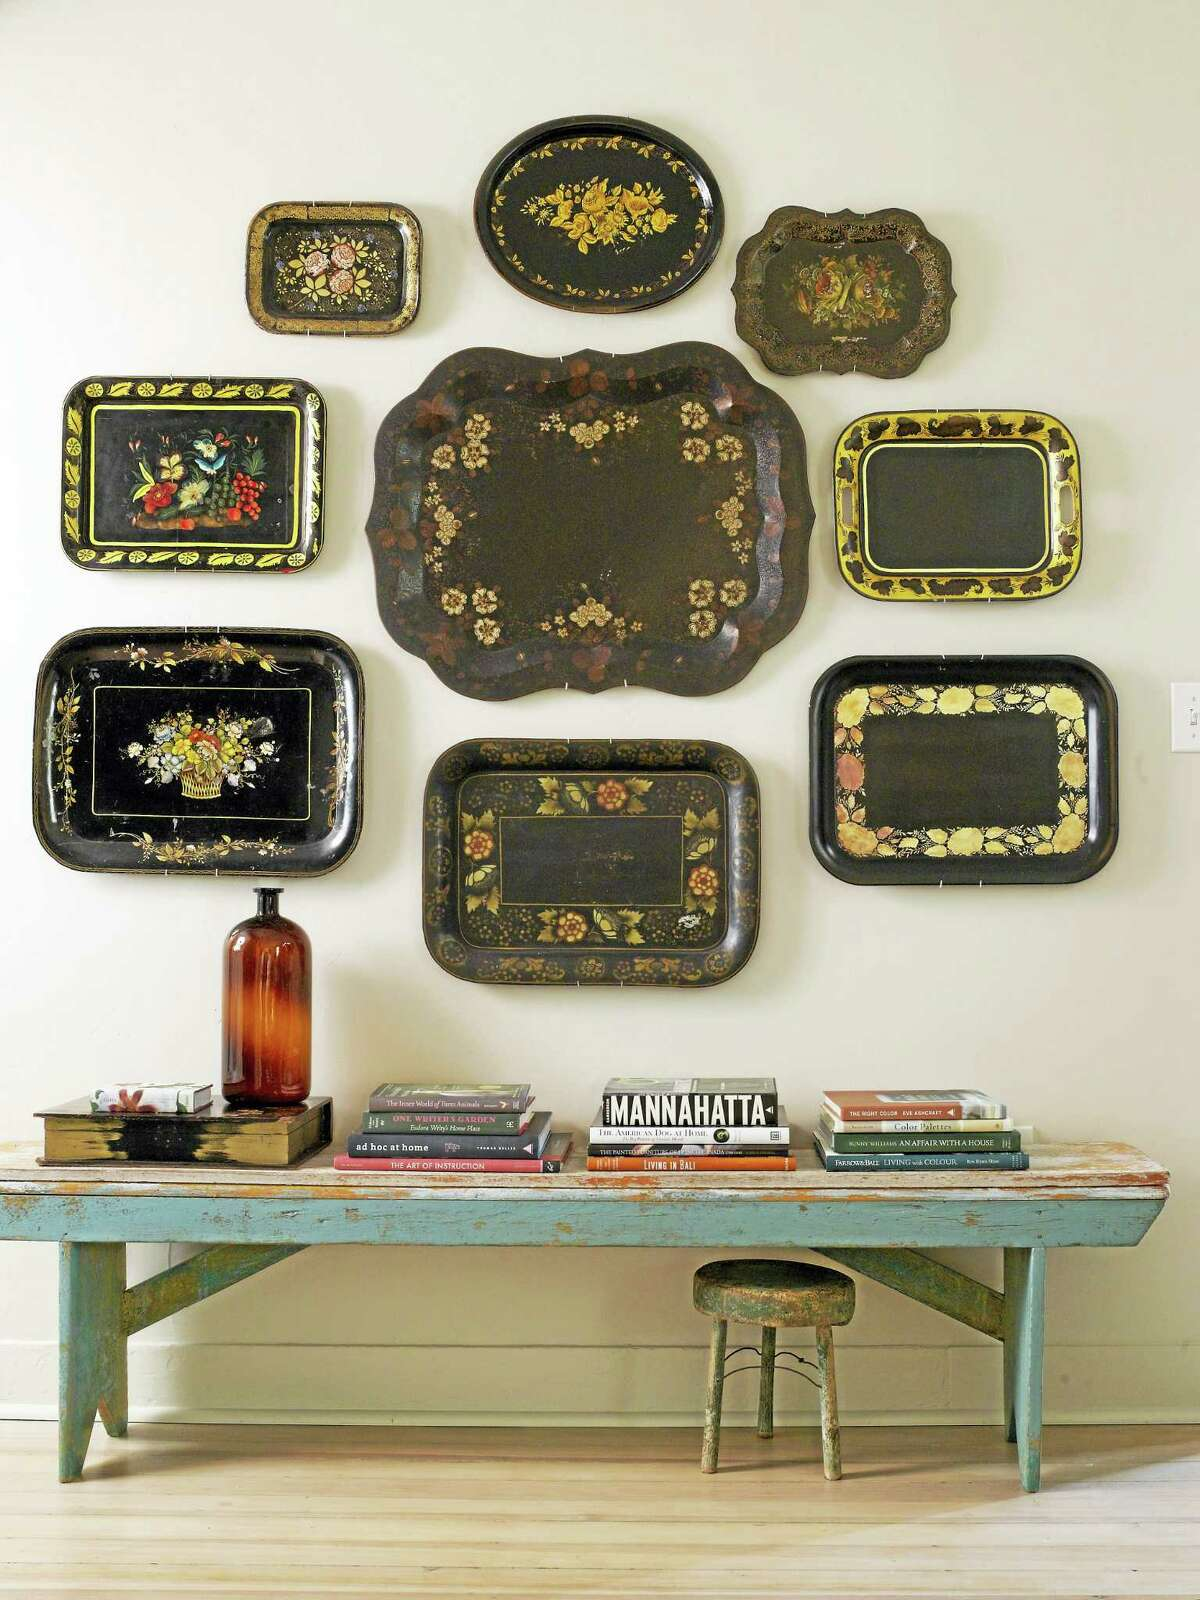 Photo courtesy Rizzoli USAGroupings of accessories can be hung in artistic clusters to bring detail and character to a lonely wall. Here, variations on a black tray feel as much like an installation as a treasured collection. Designer: Joan Osofsky.